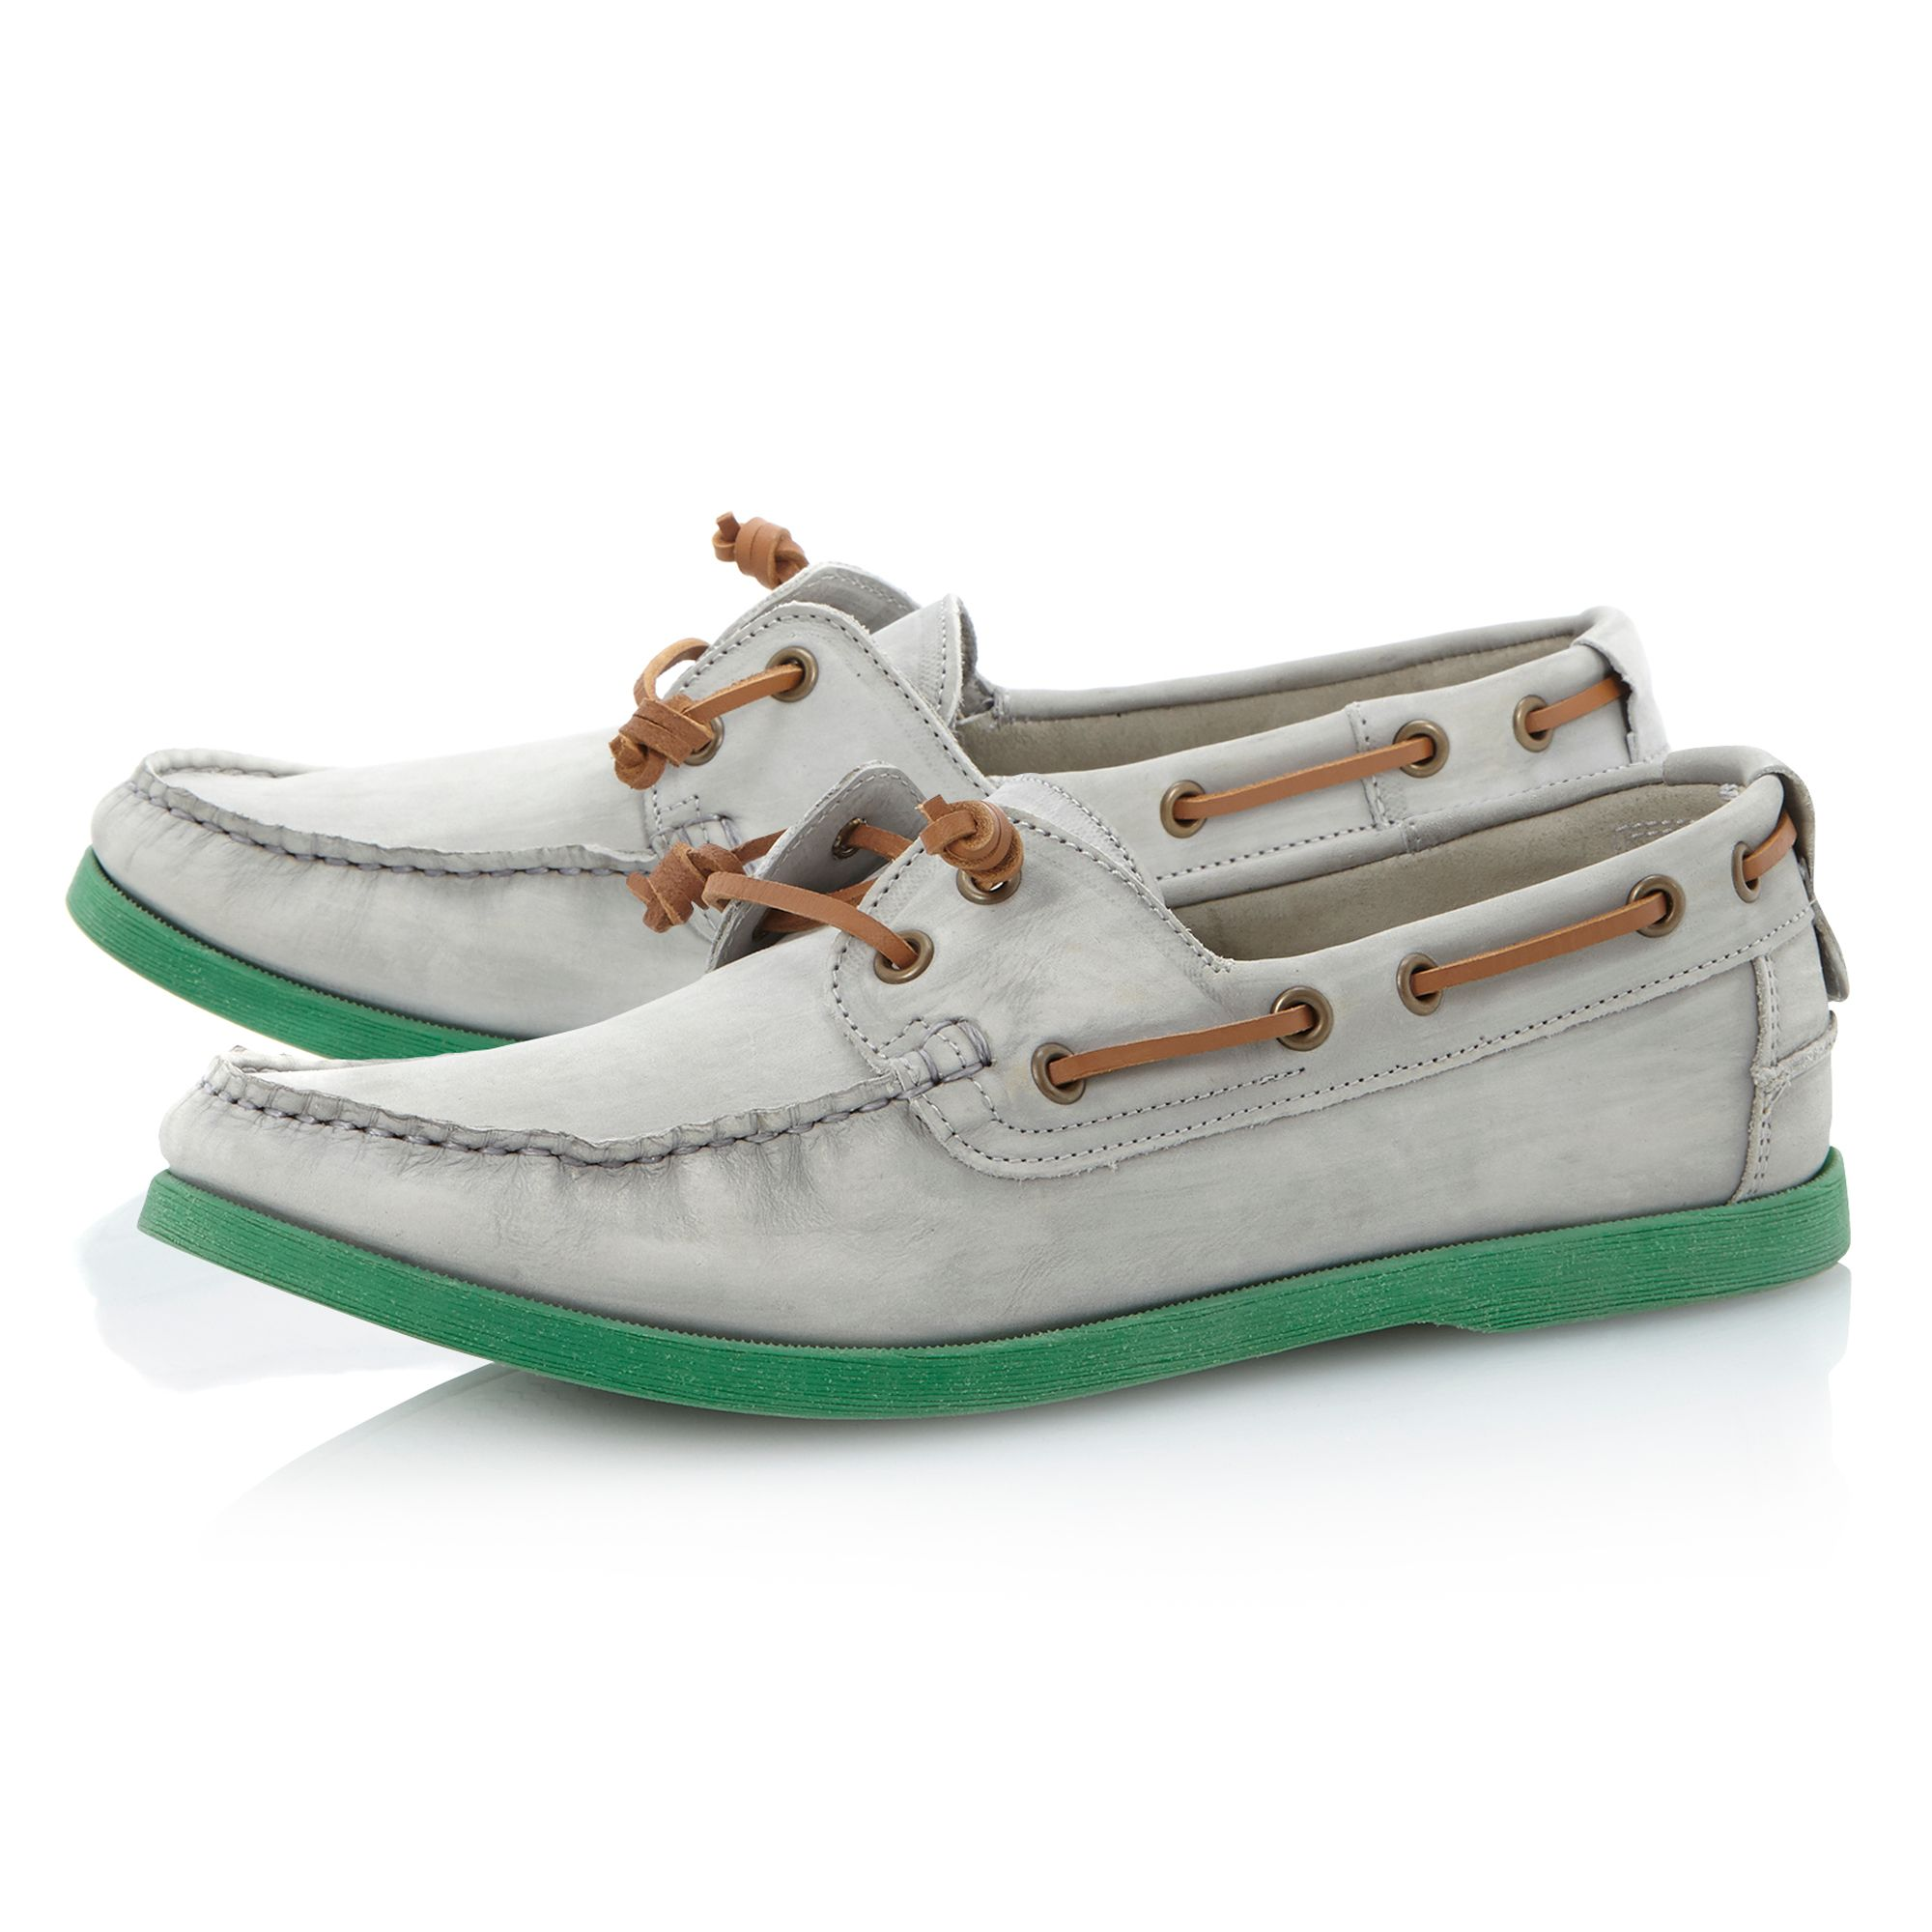 Bassett pastel boat shoes